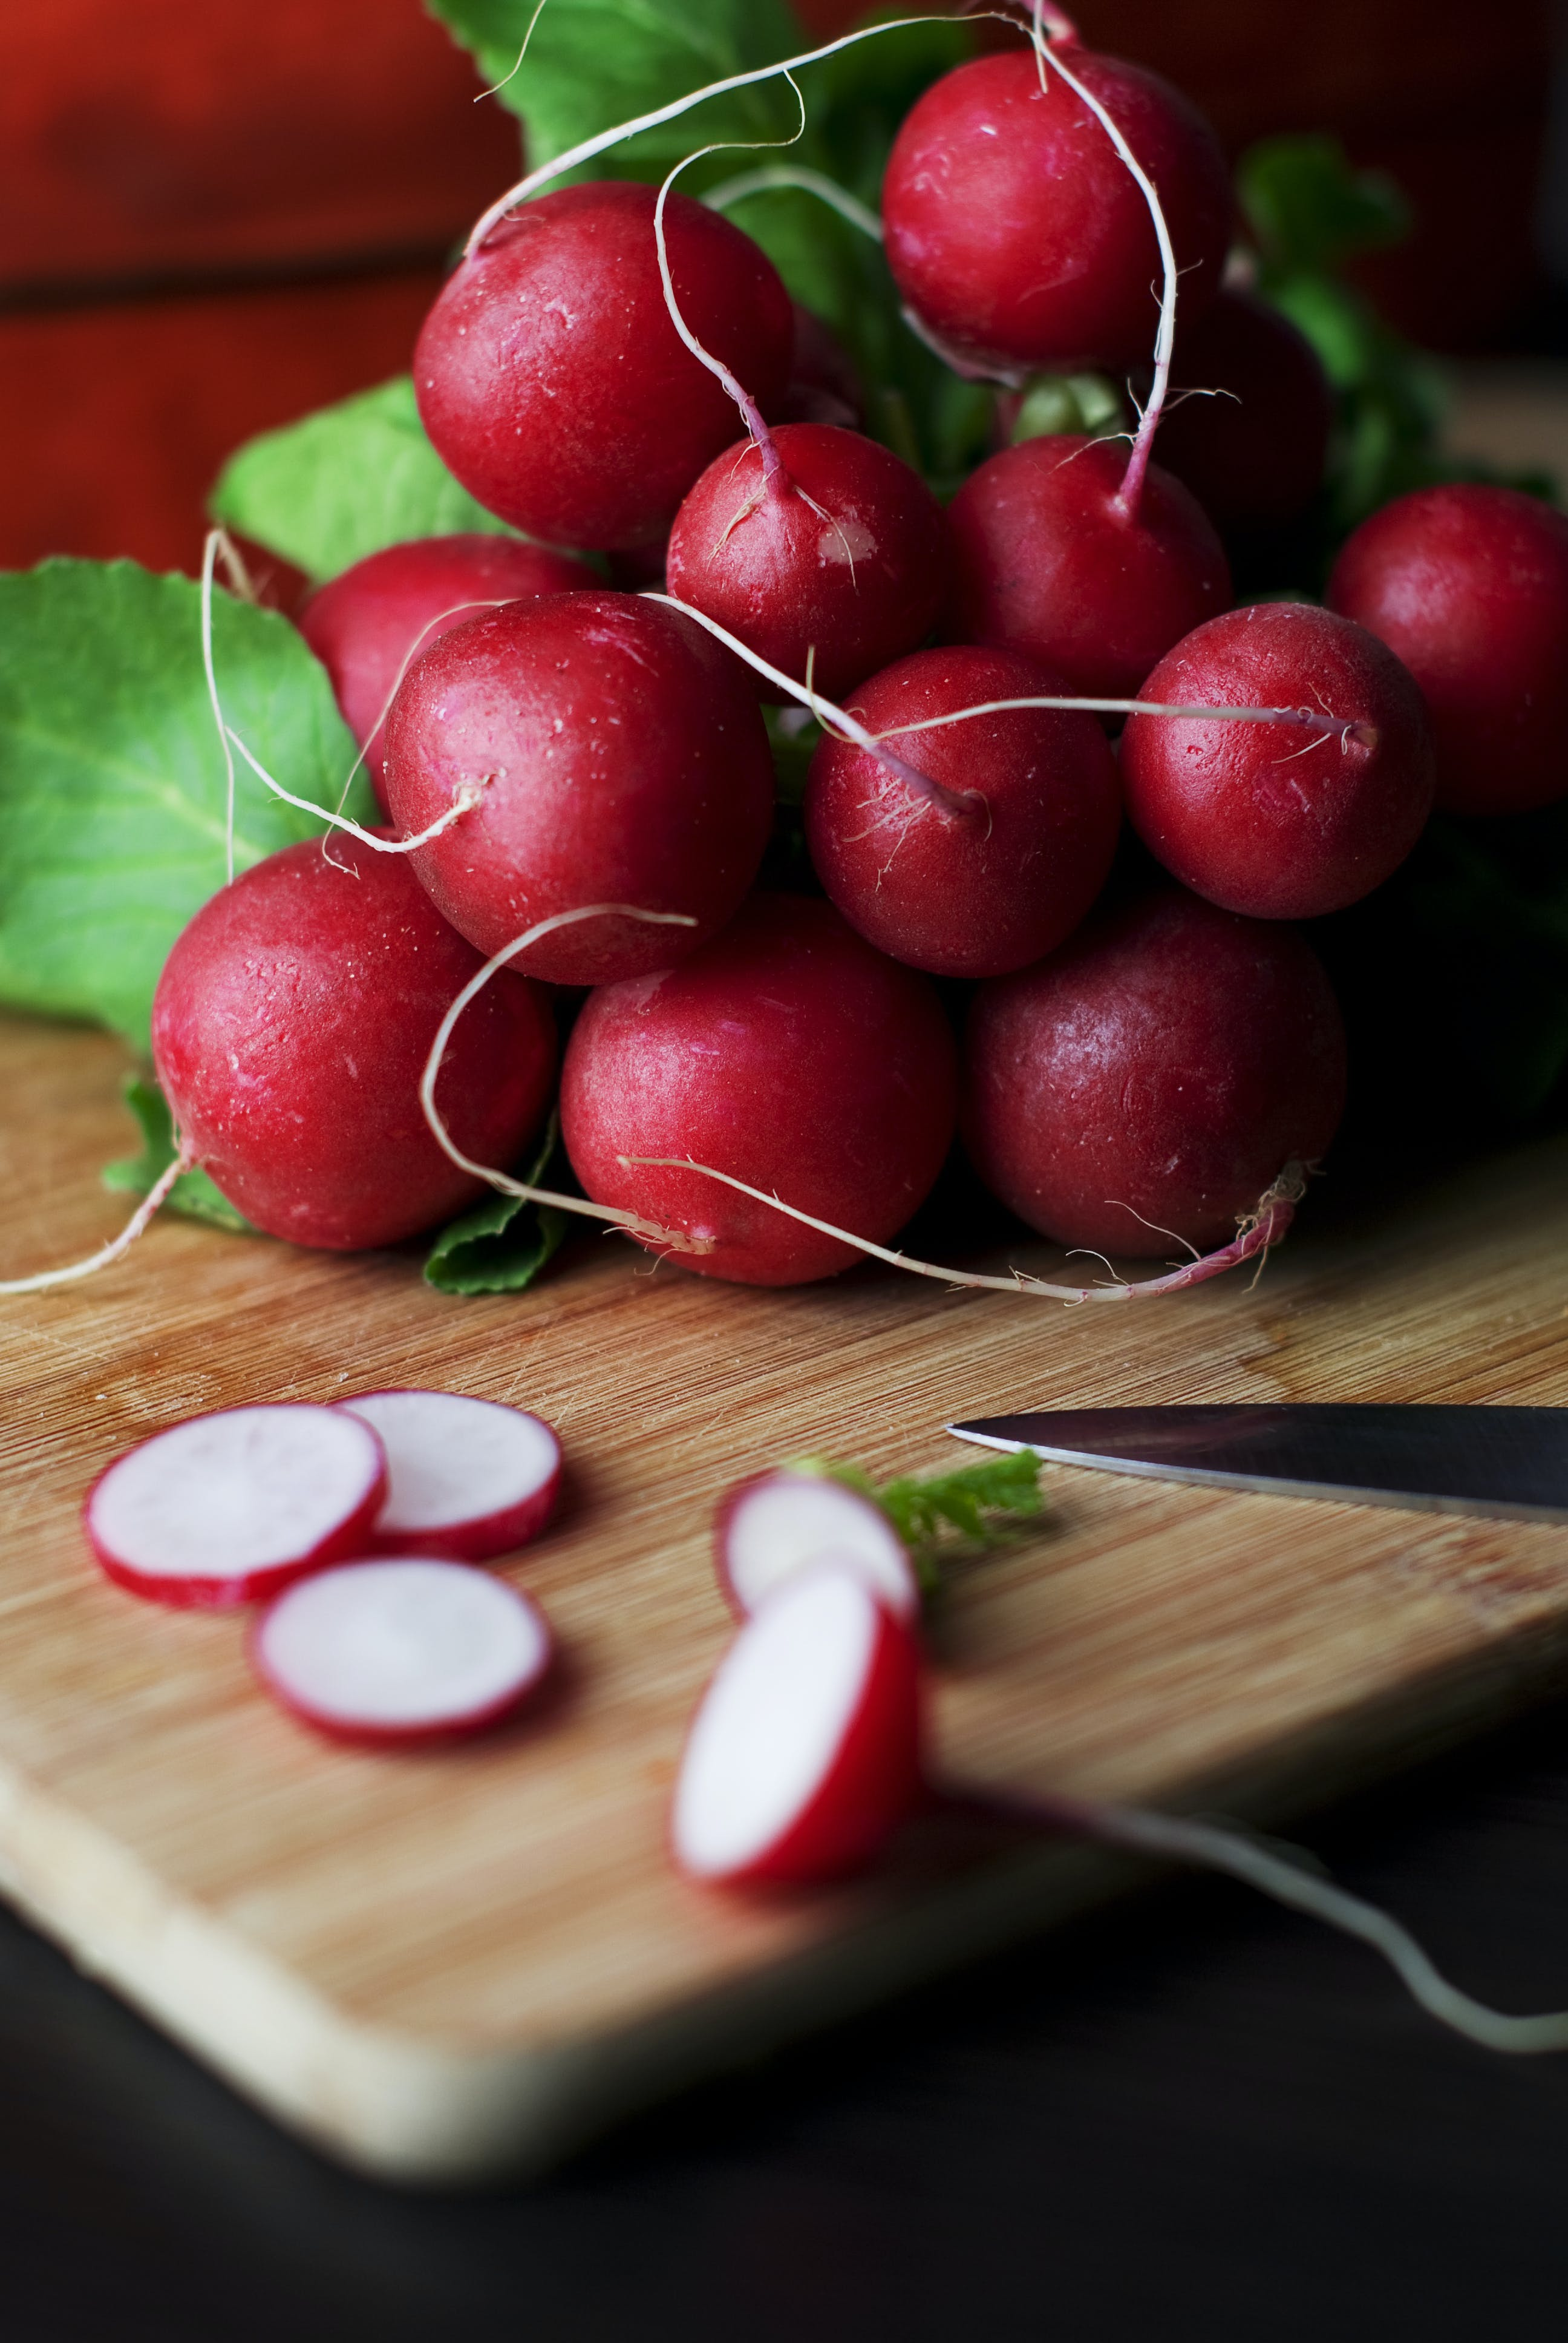 Free stock photo of food, radishes, vegatables